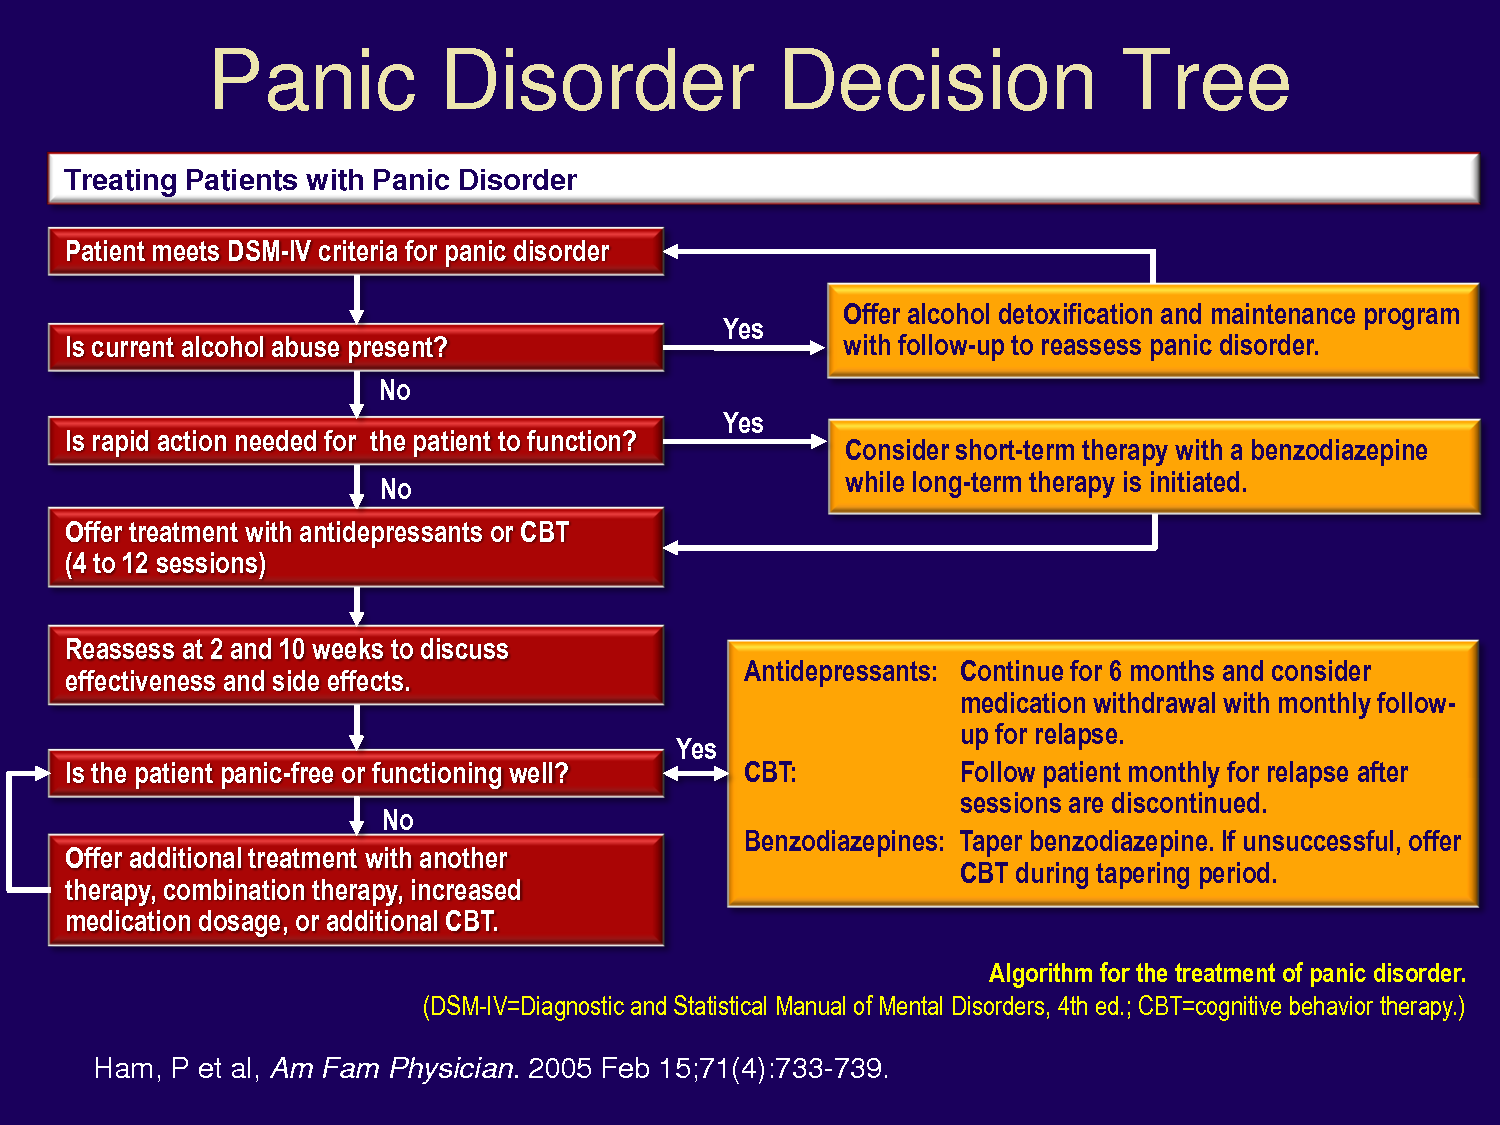 Decision Tree For Panic Disorder